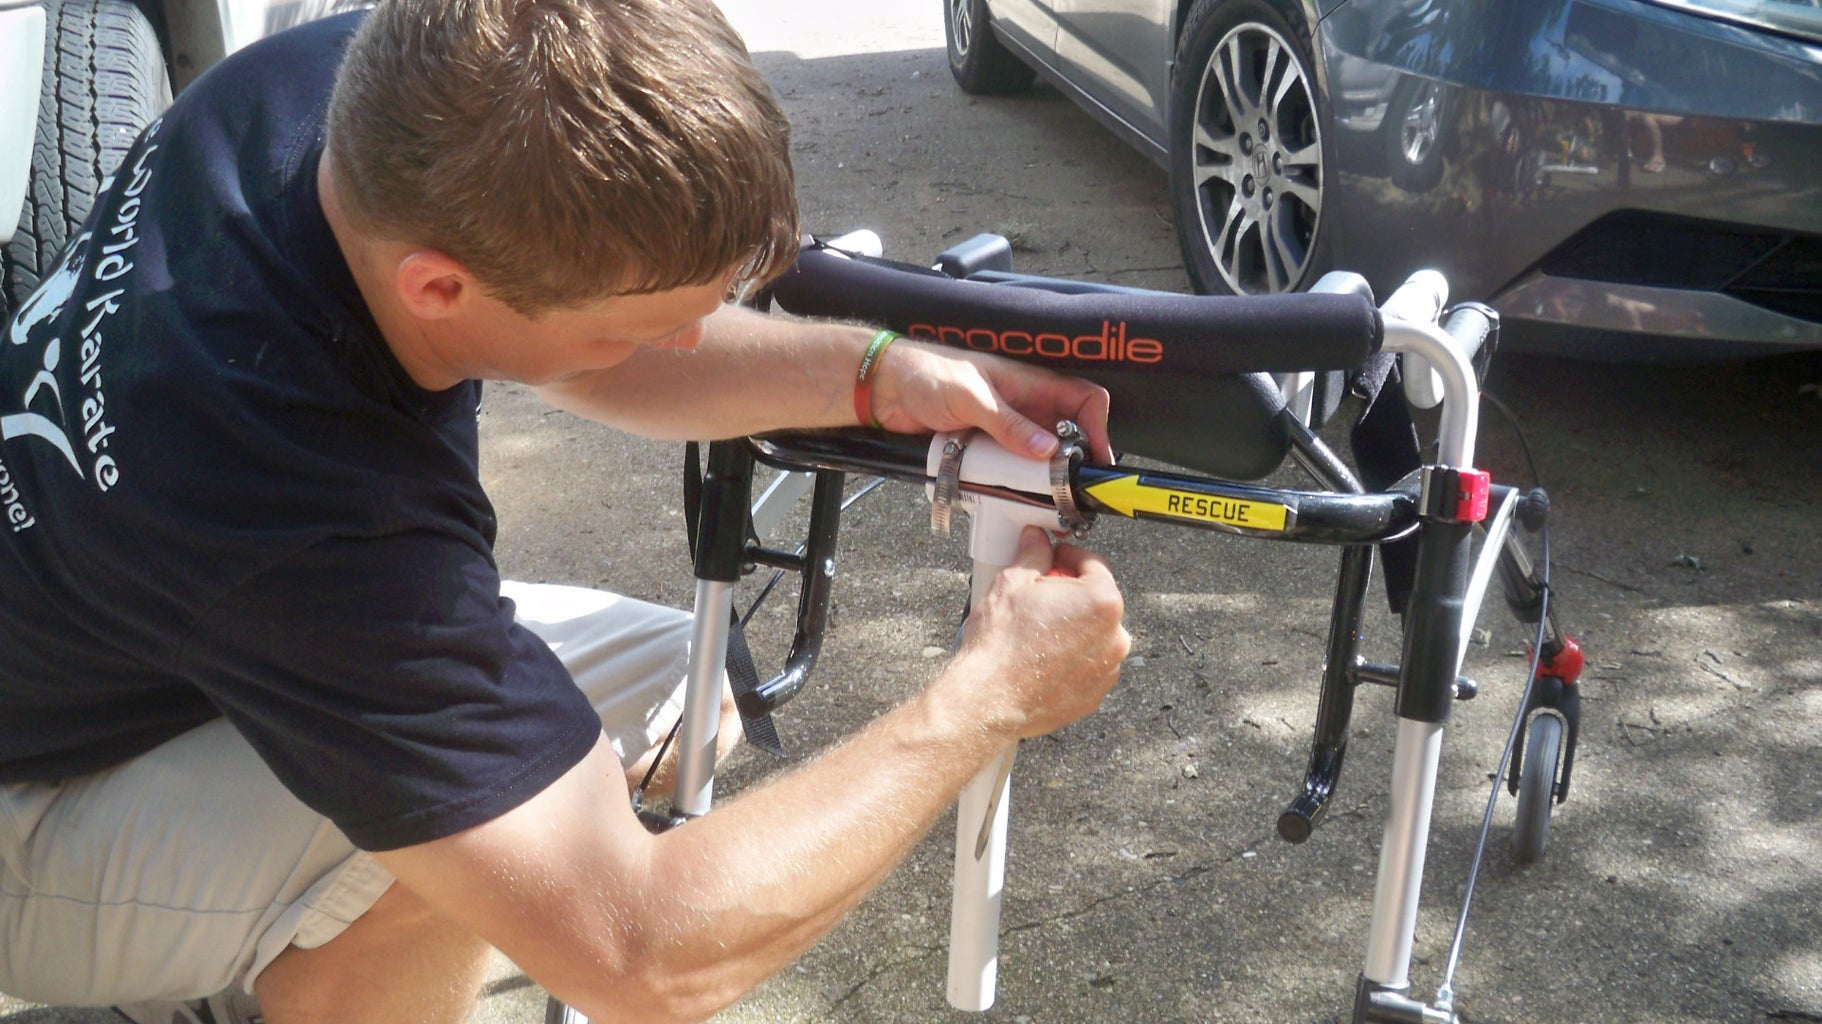 Build Vertical Brace and Attach to Walker